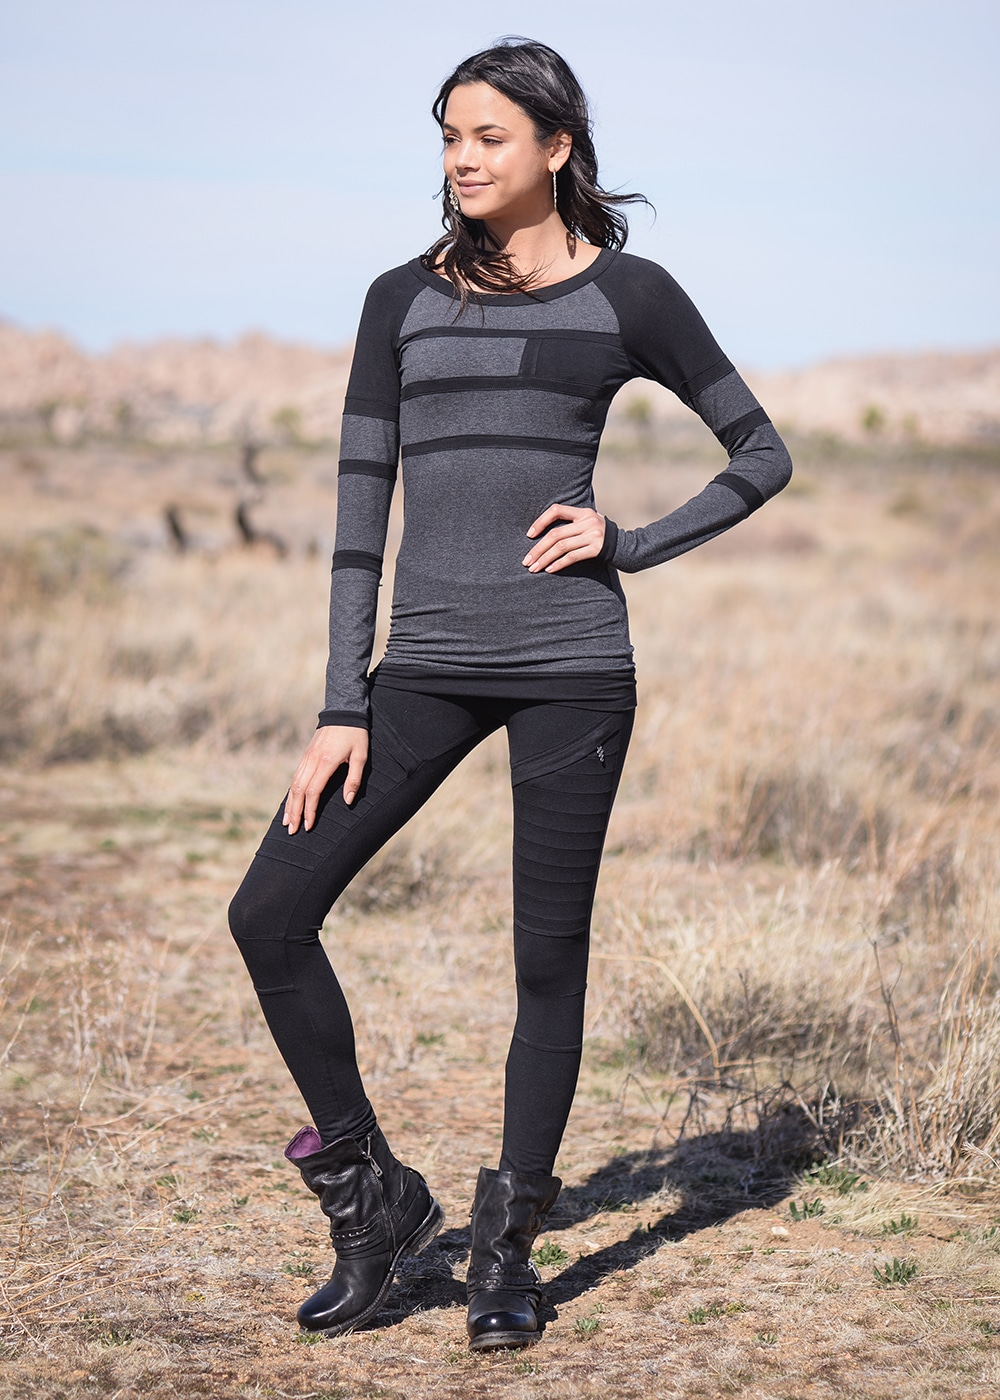 Bamboo and Organic Cotton Recluse Leggings in Black by Nomads Hemp Wear Full Body